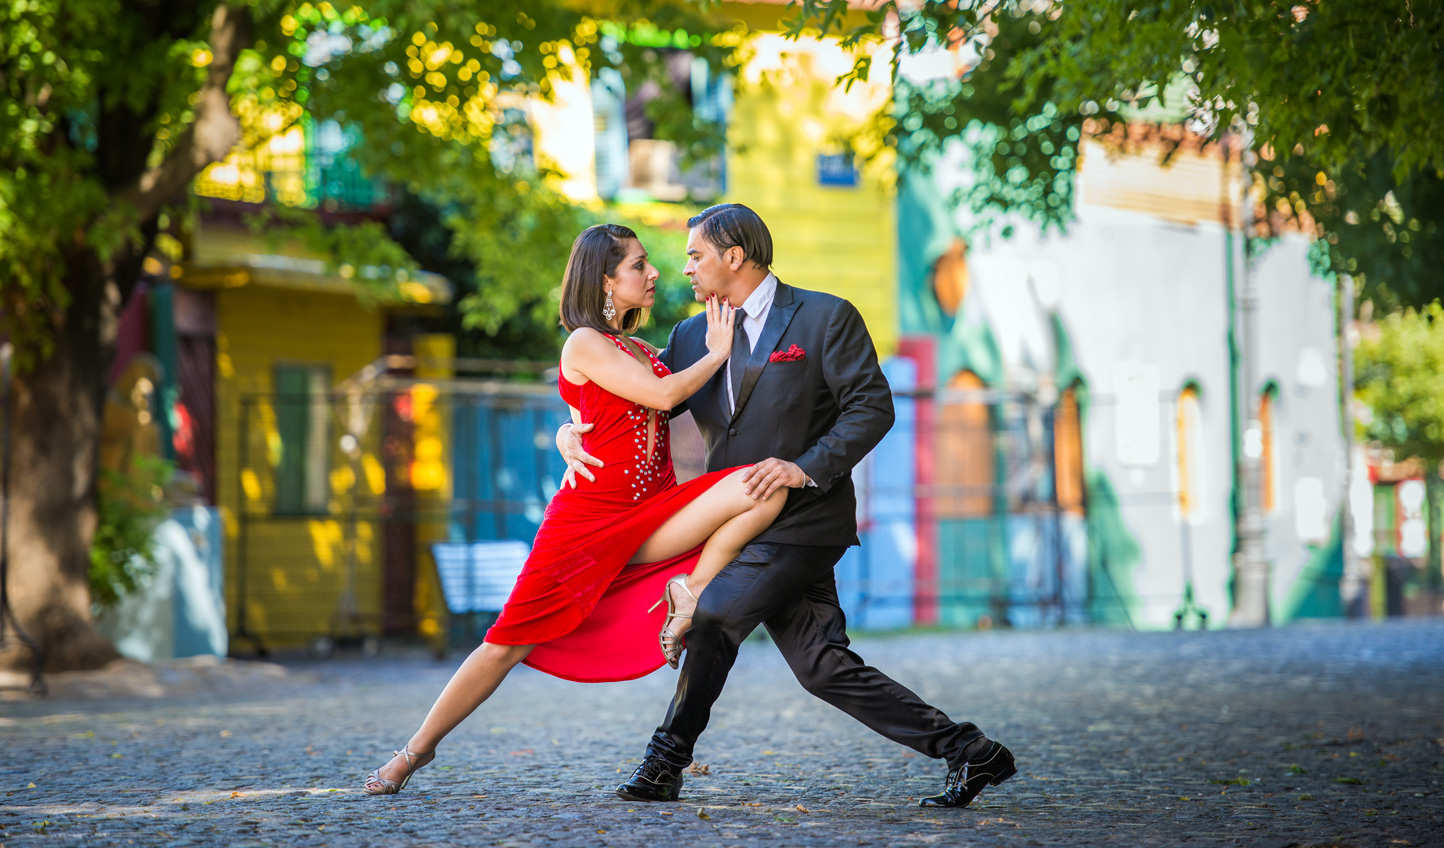 Catch a spot of tango in Buenos Aires